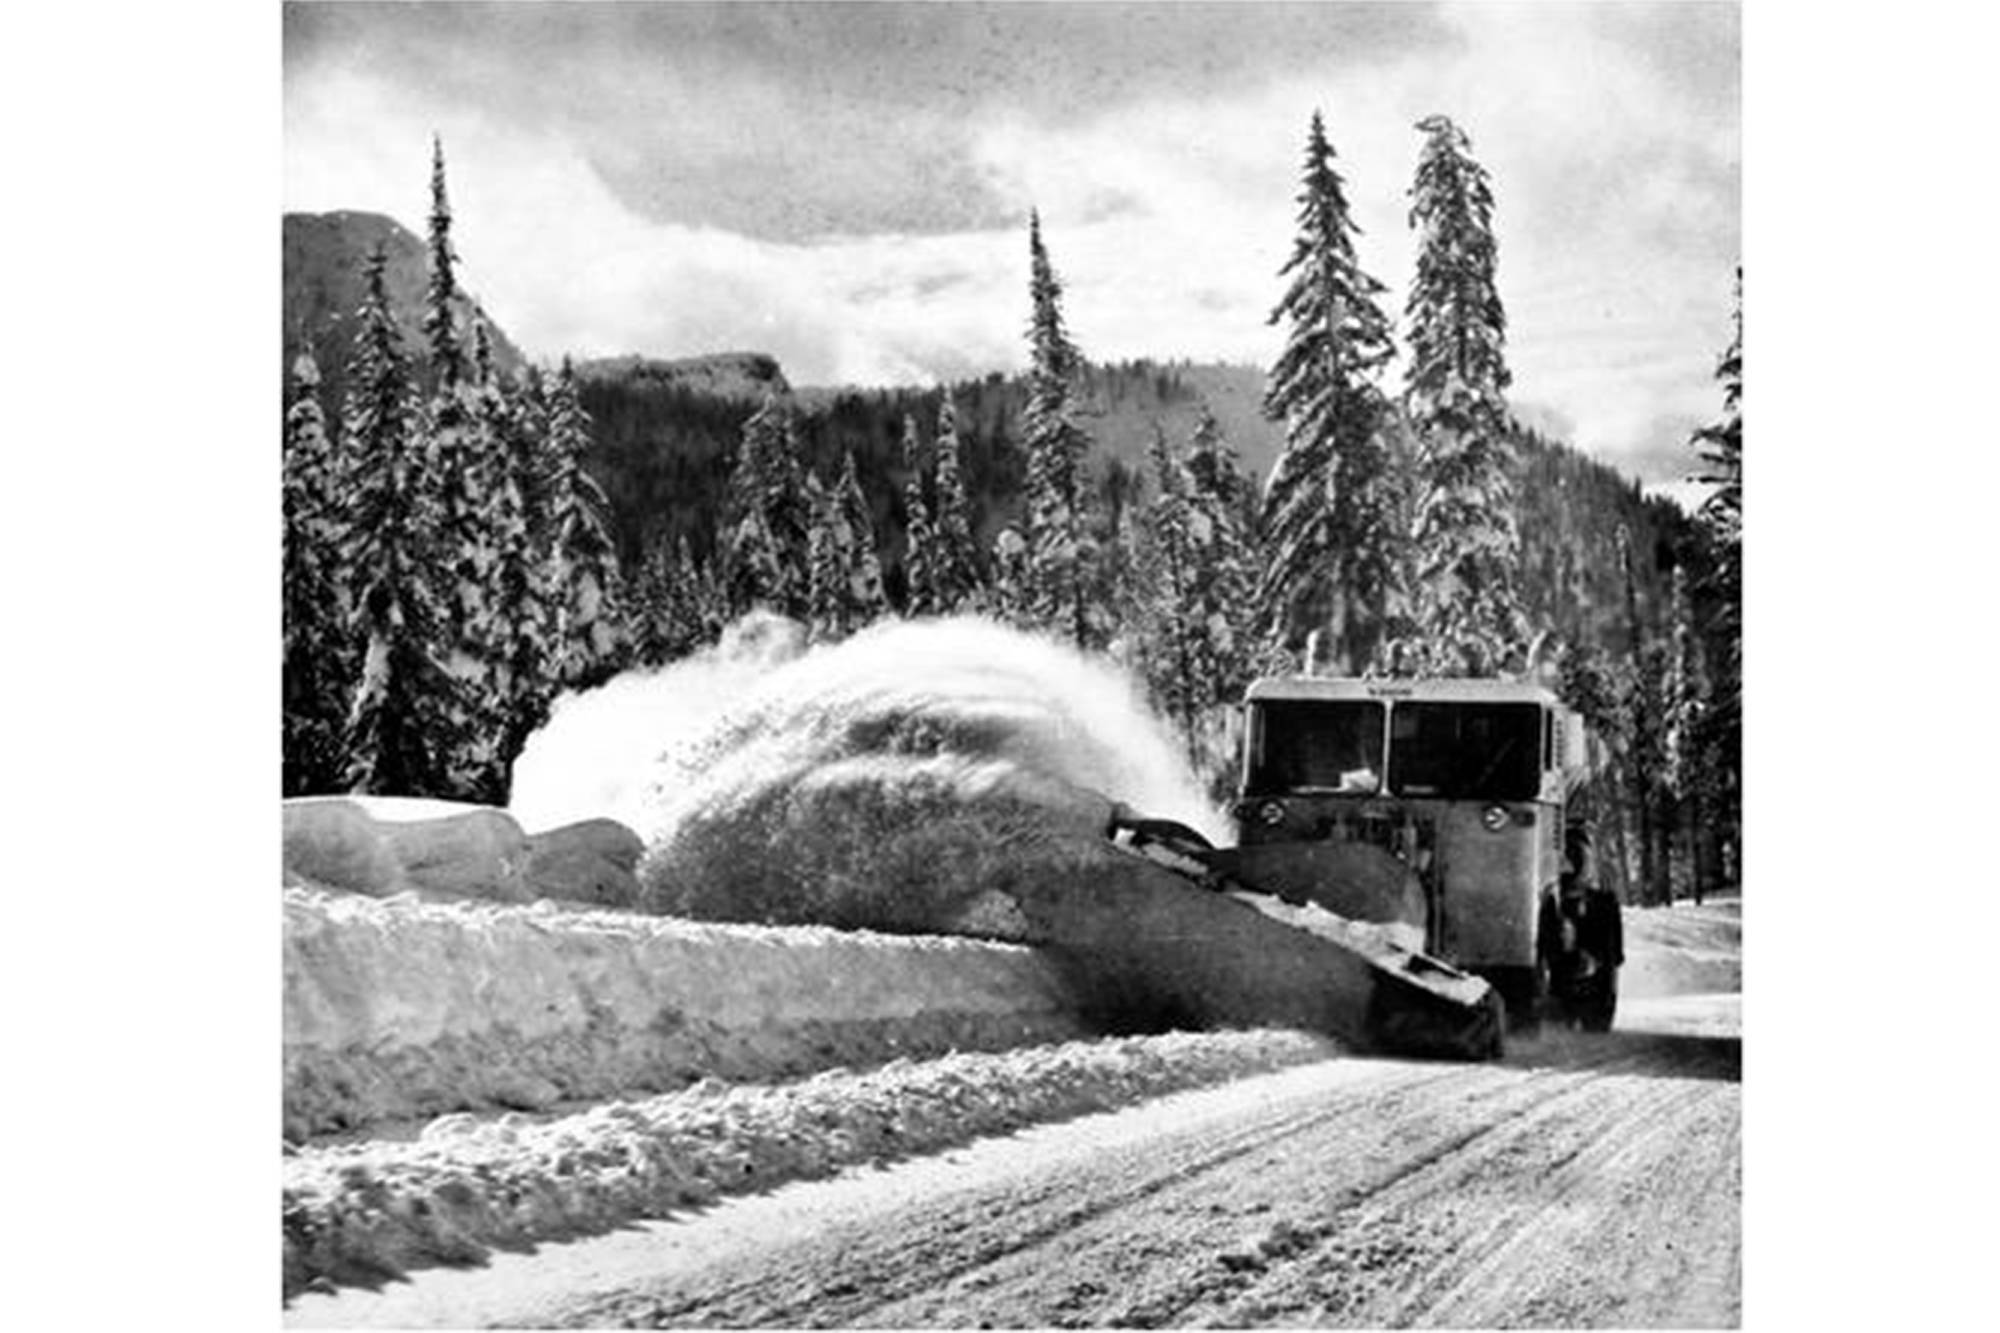 A snow plow fitted with a Pratt and Whitney ST6A turbine turboprop engine removes snow from the Kootenay Pass on Highway 3 between Creston and Salmo in the mid-1960s. (BC Ministry of Transportation and Infrastructure photo)